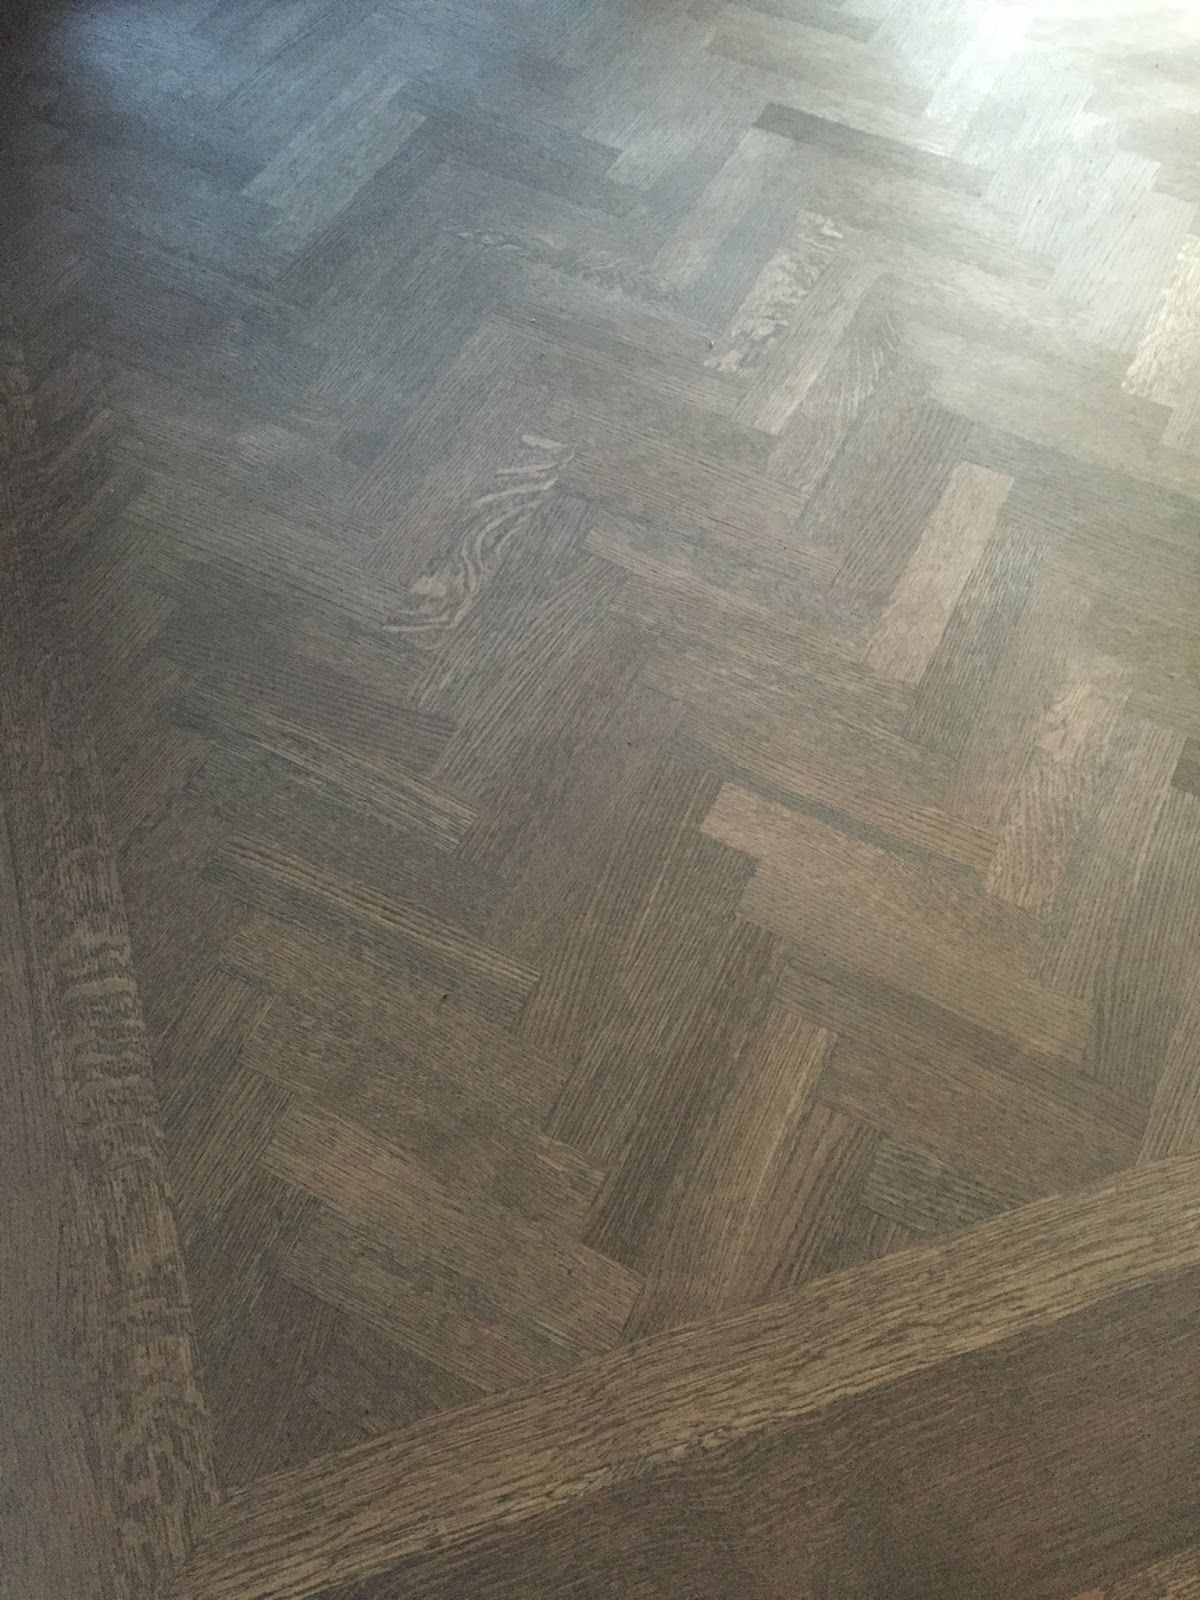 Minwax Charcoal Grey Minwax Stains On Red Oak Flooring Floor Wood Et Tile Pinterest